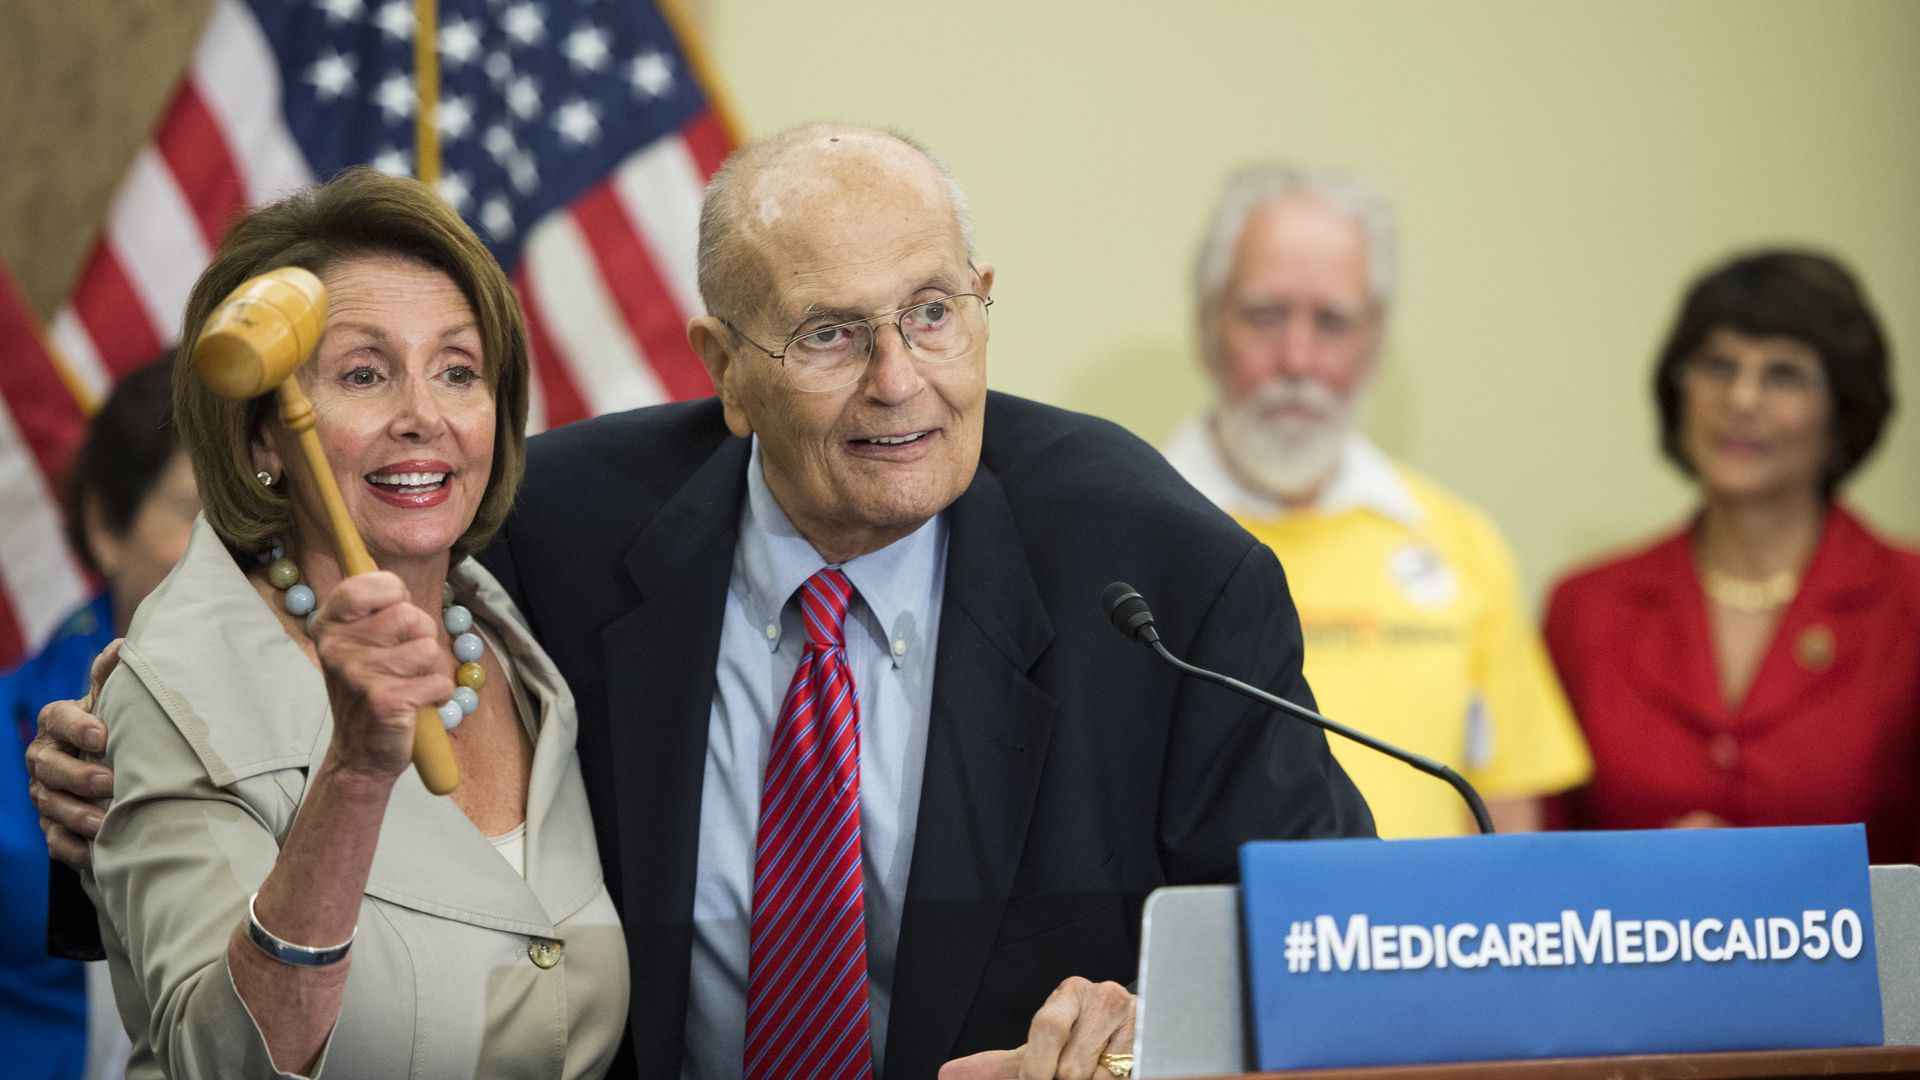 John Dingell and Nacny pelosi